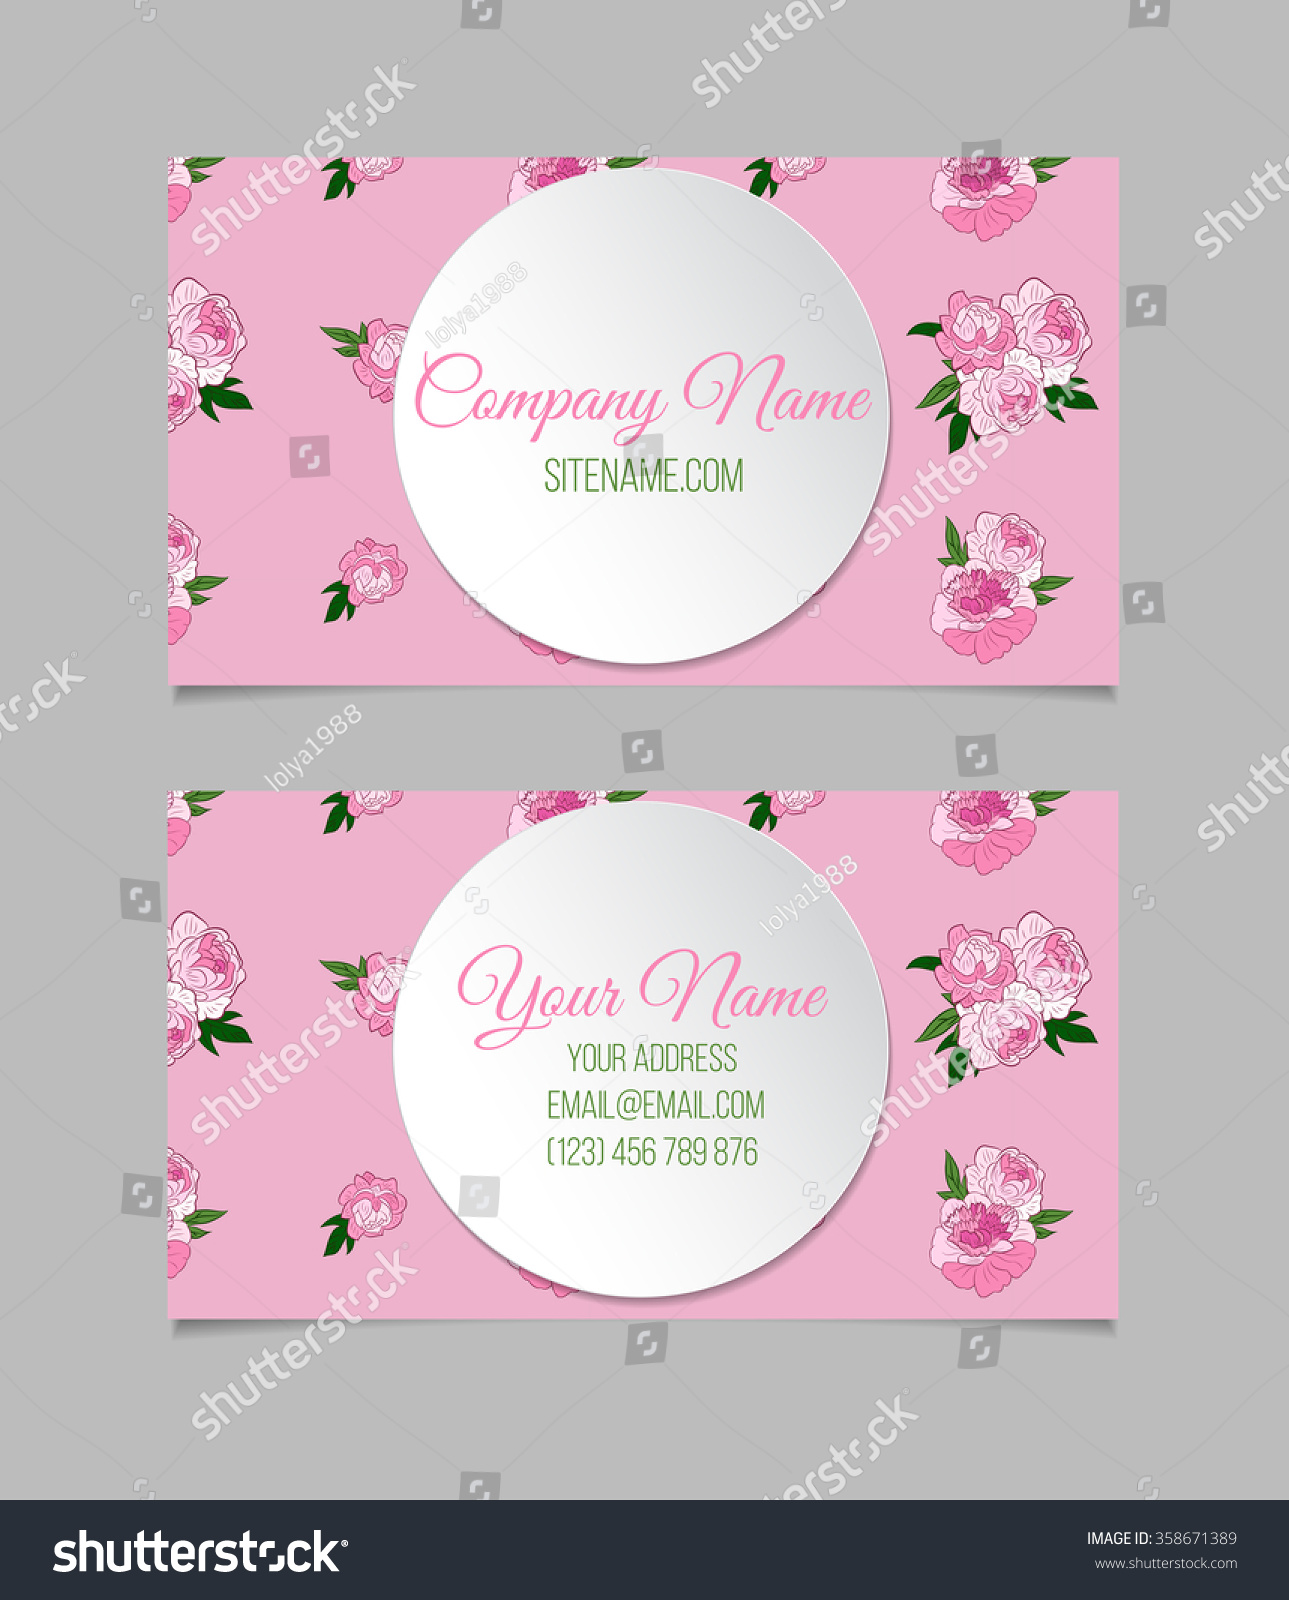 Doublesided Floral Business Card Template Peonies Stock Vector ...